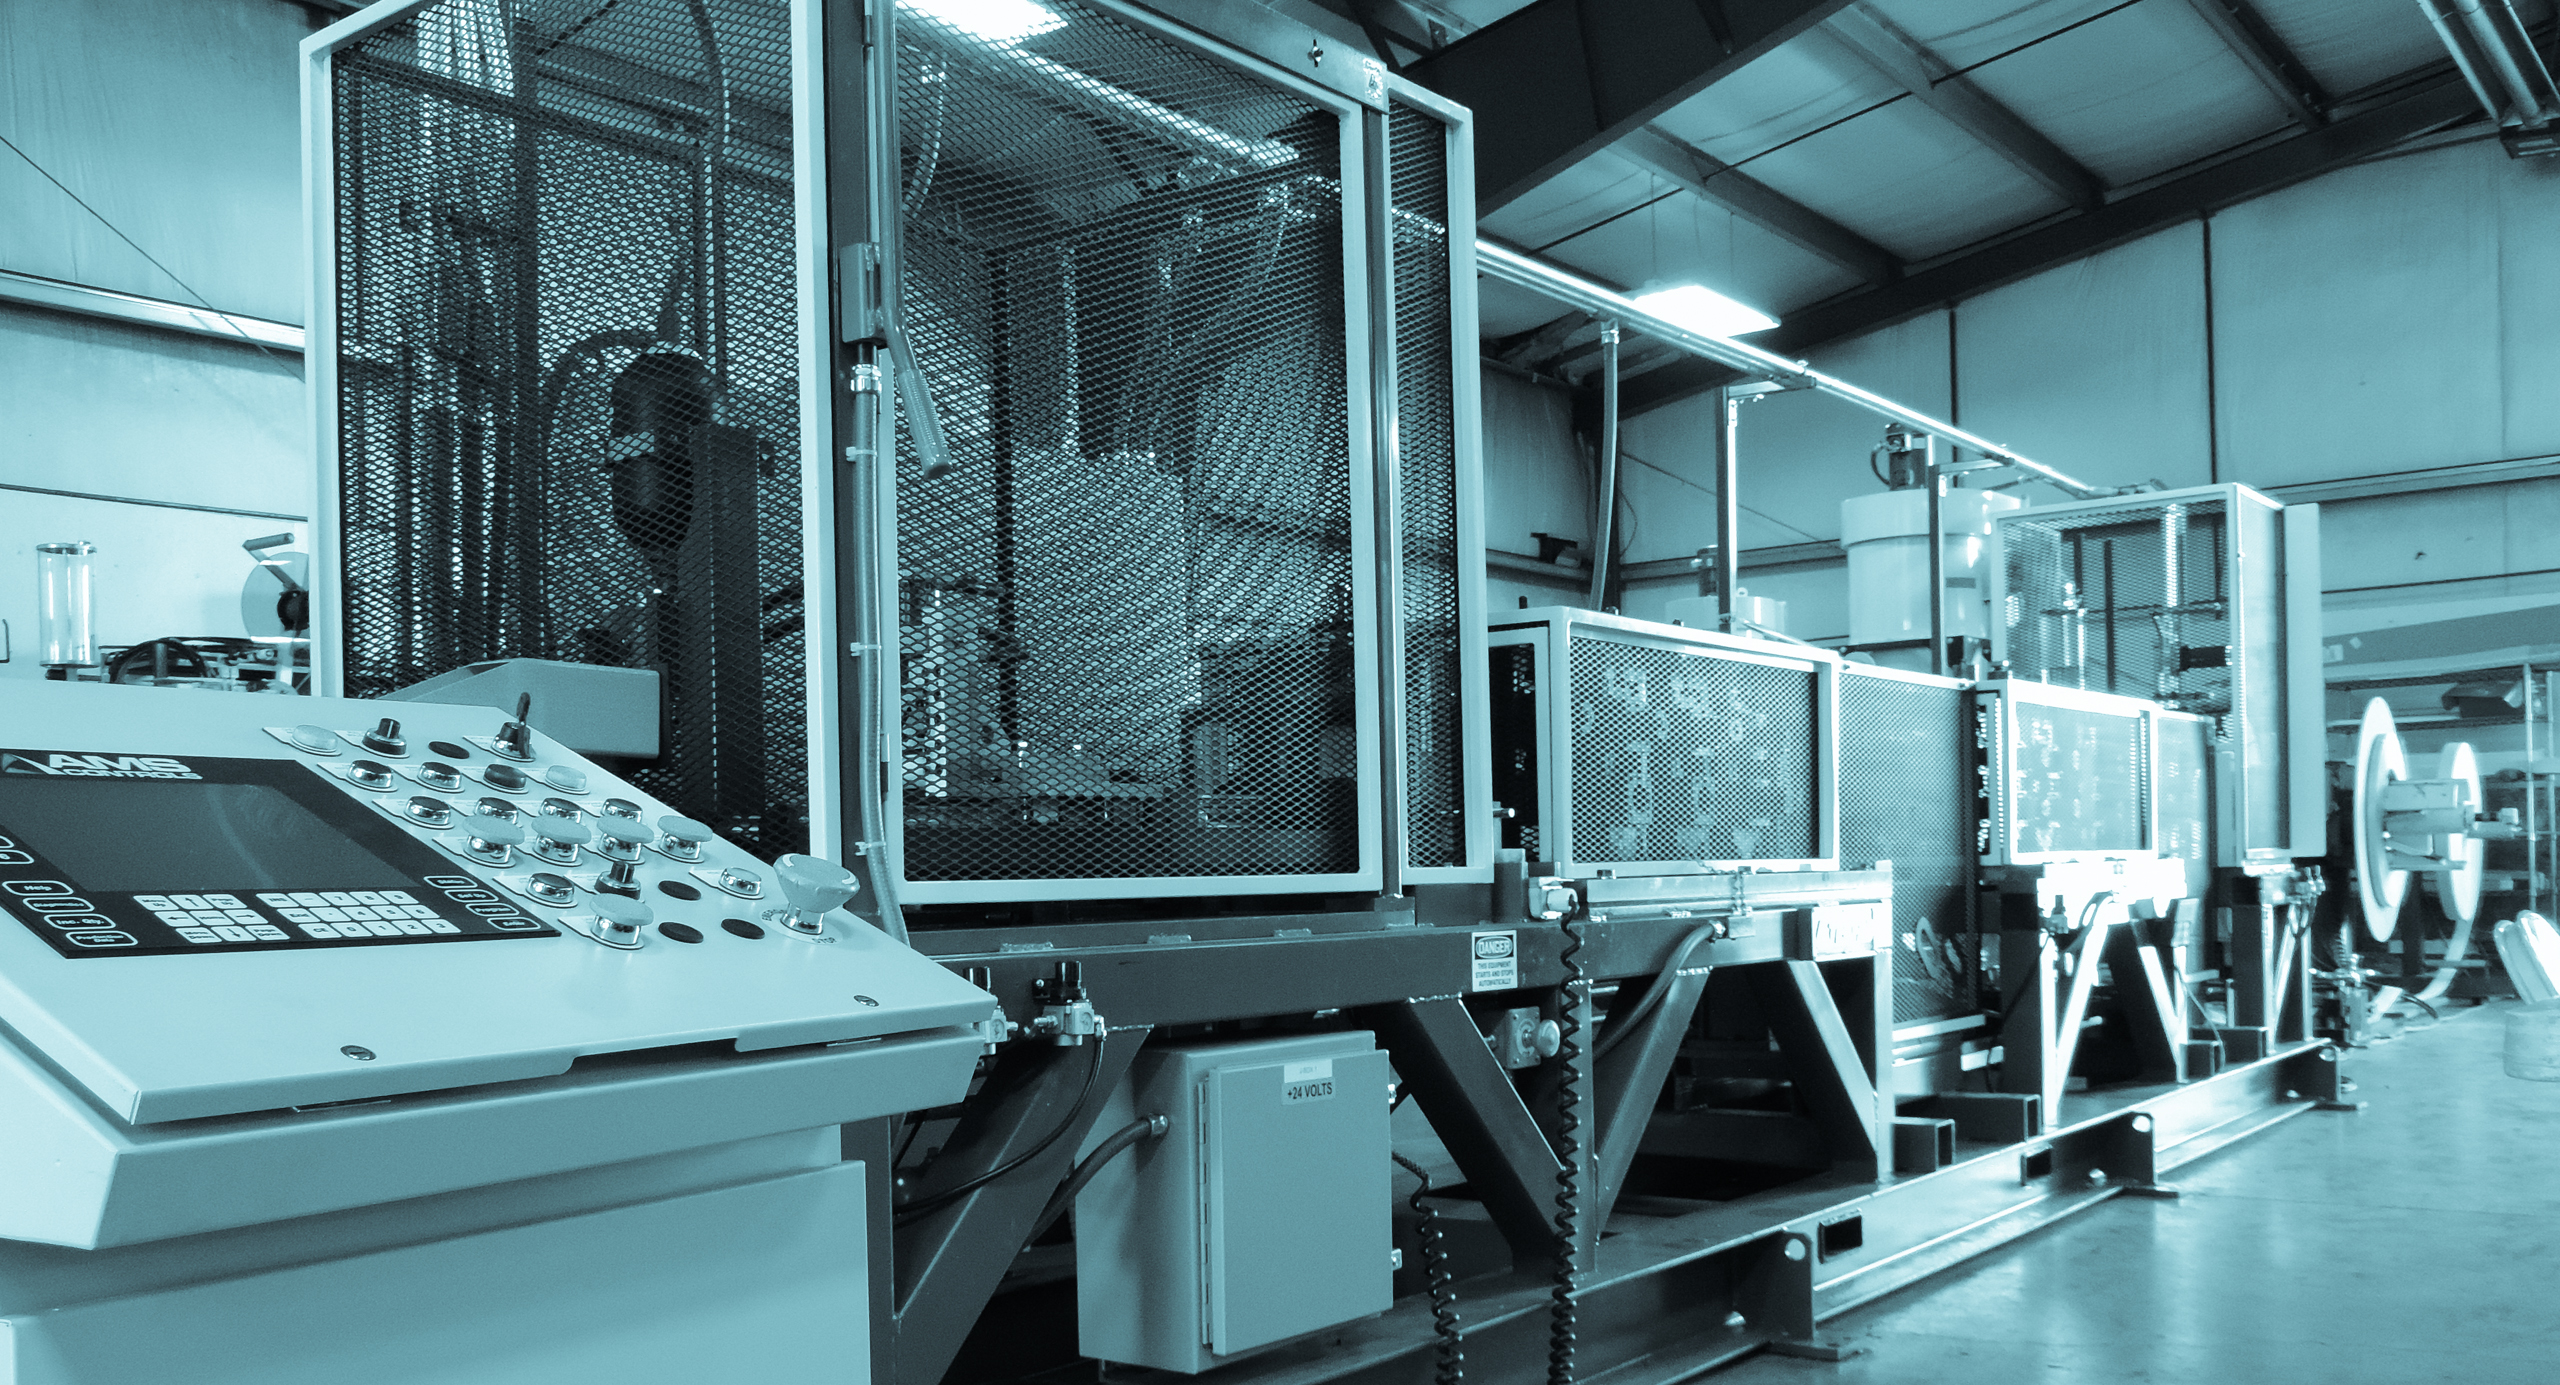 Turn-key Production Lines